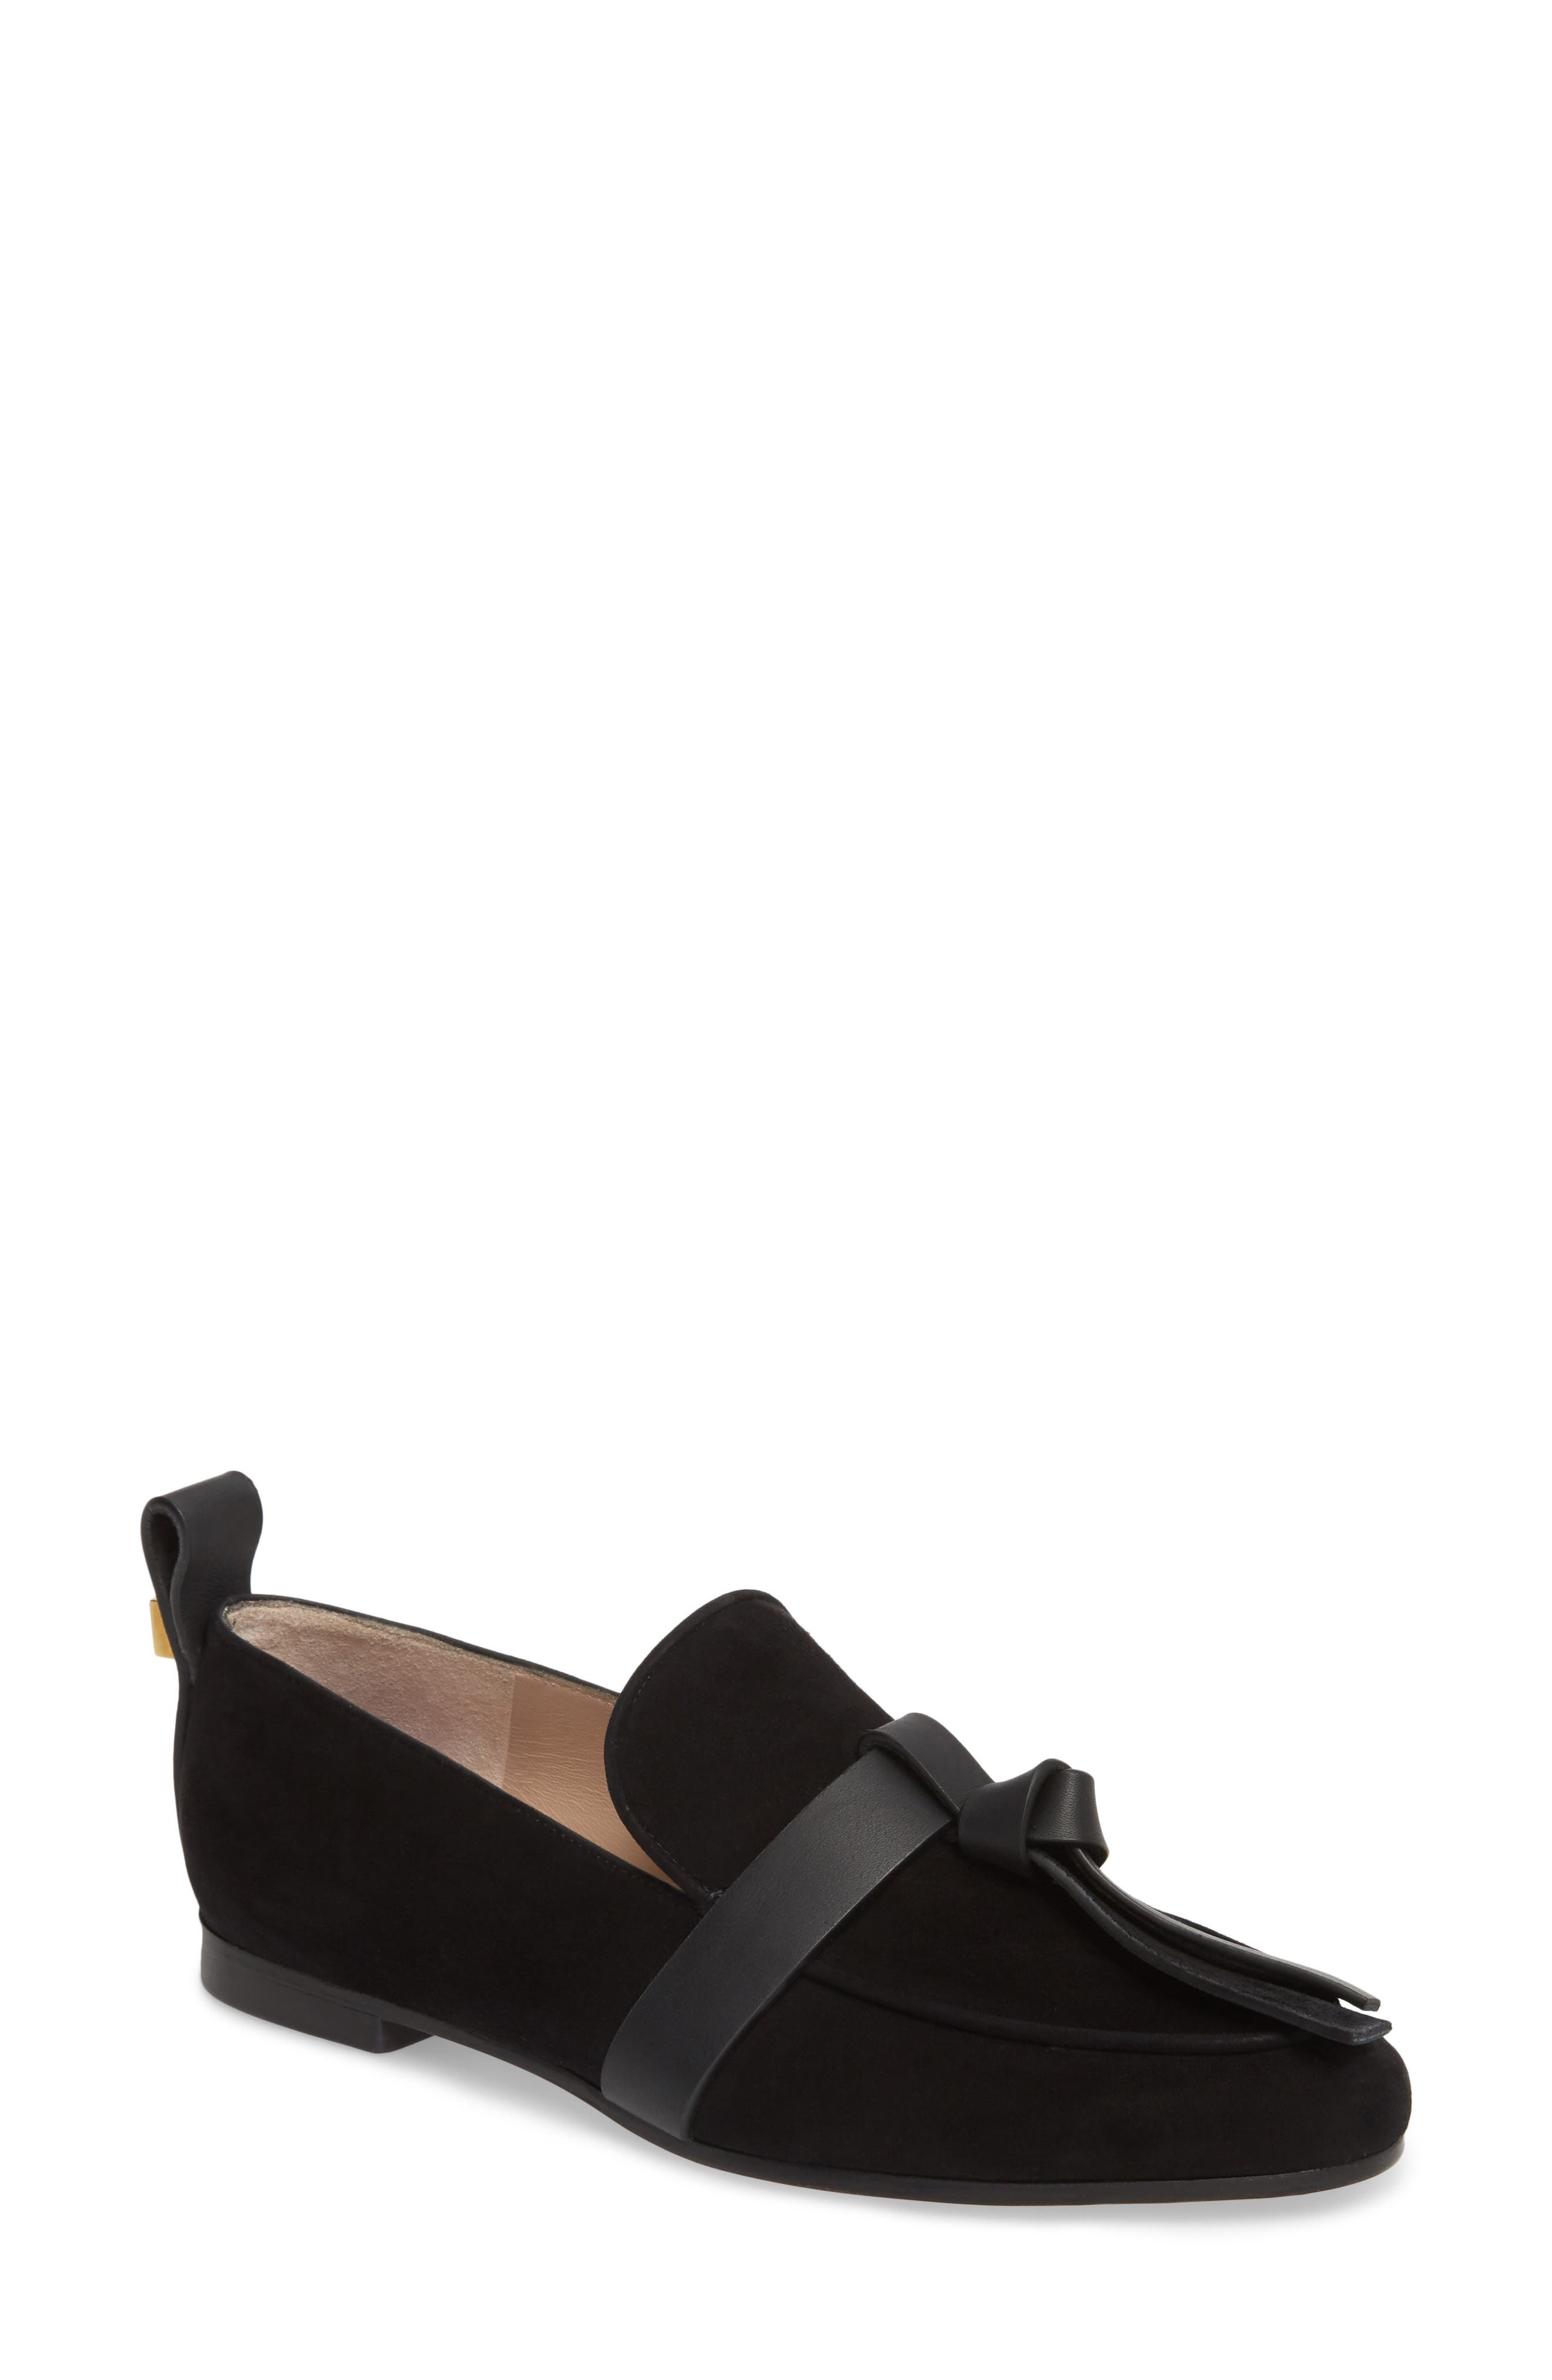 Prescott Knotted Loafer,                             Main thumbnail 1, color,                             001